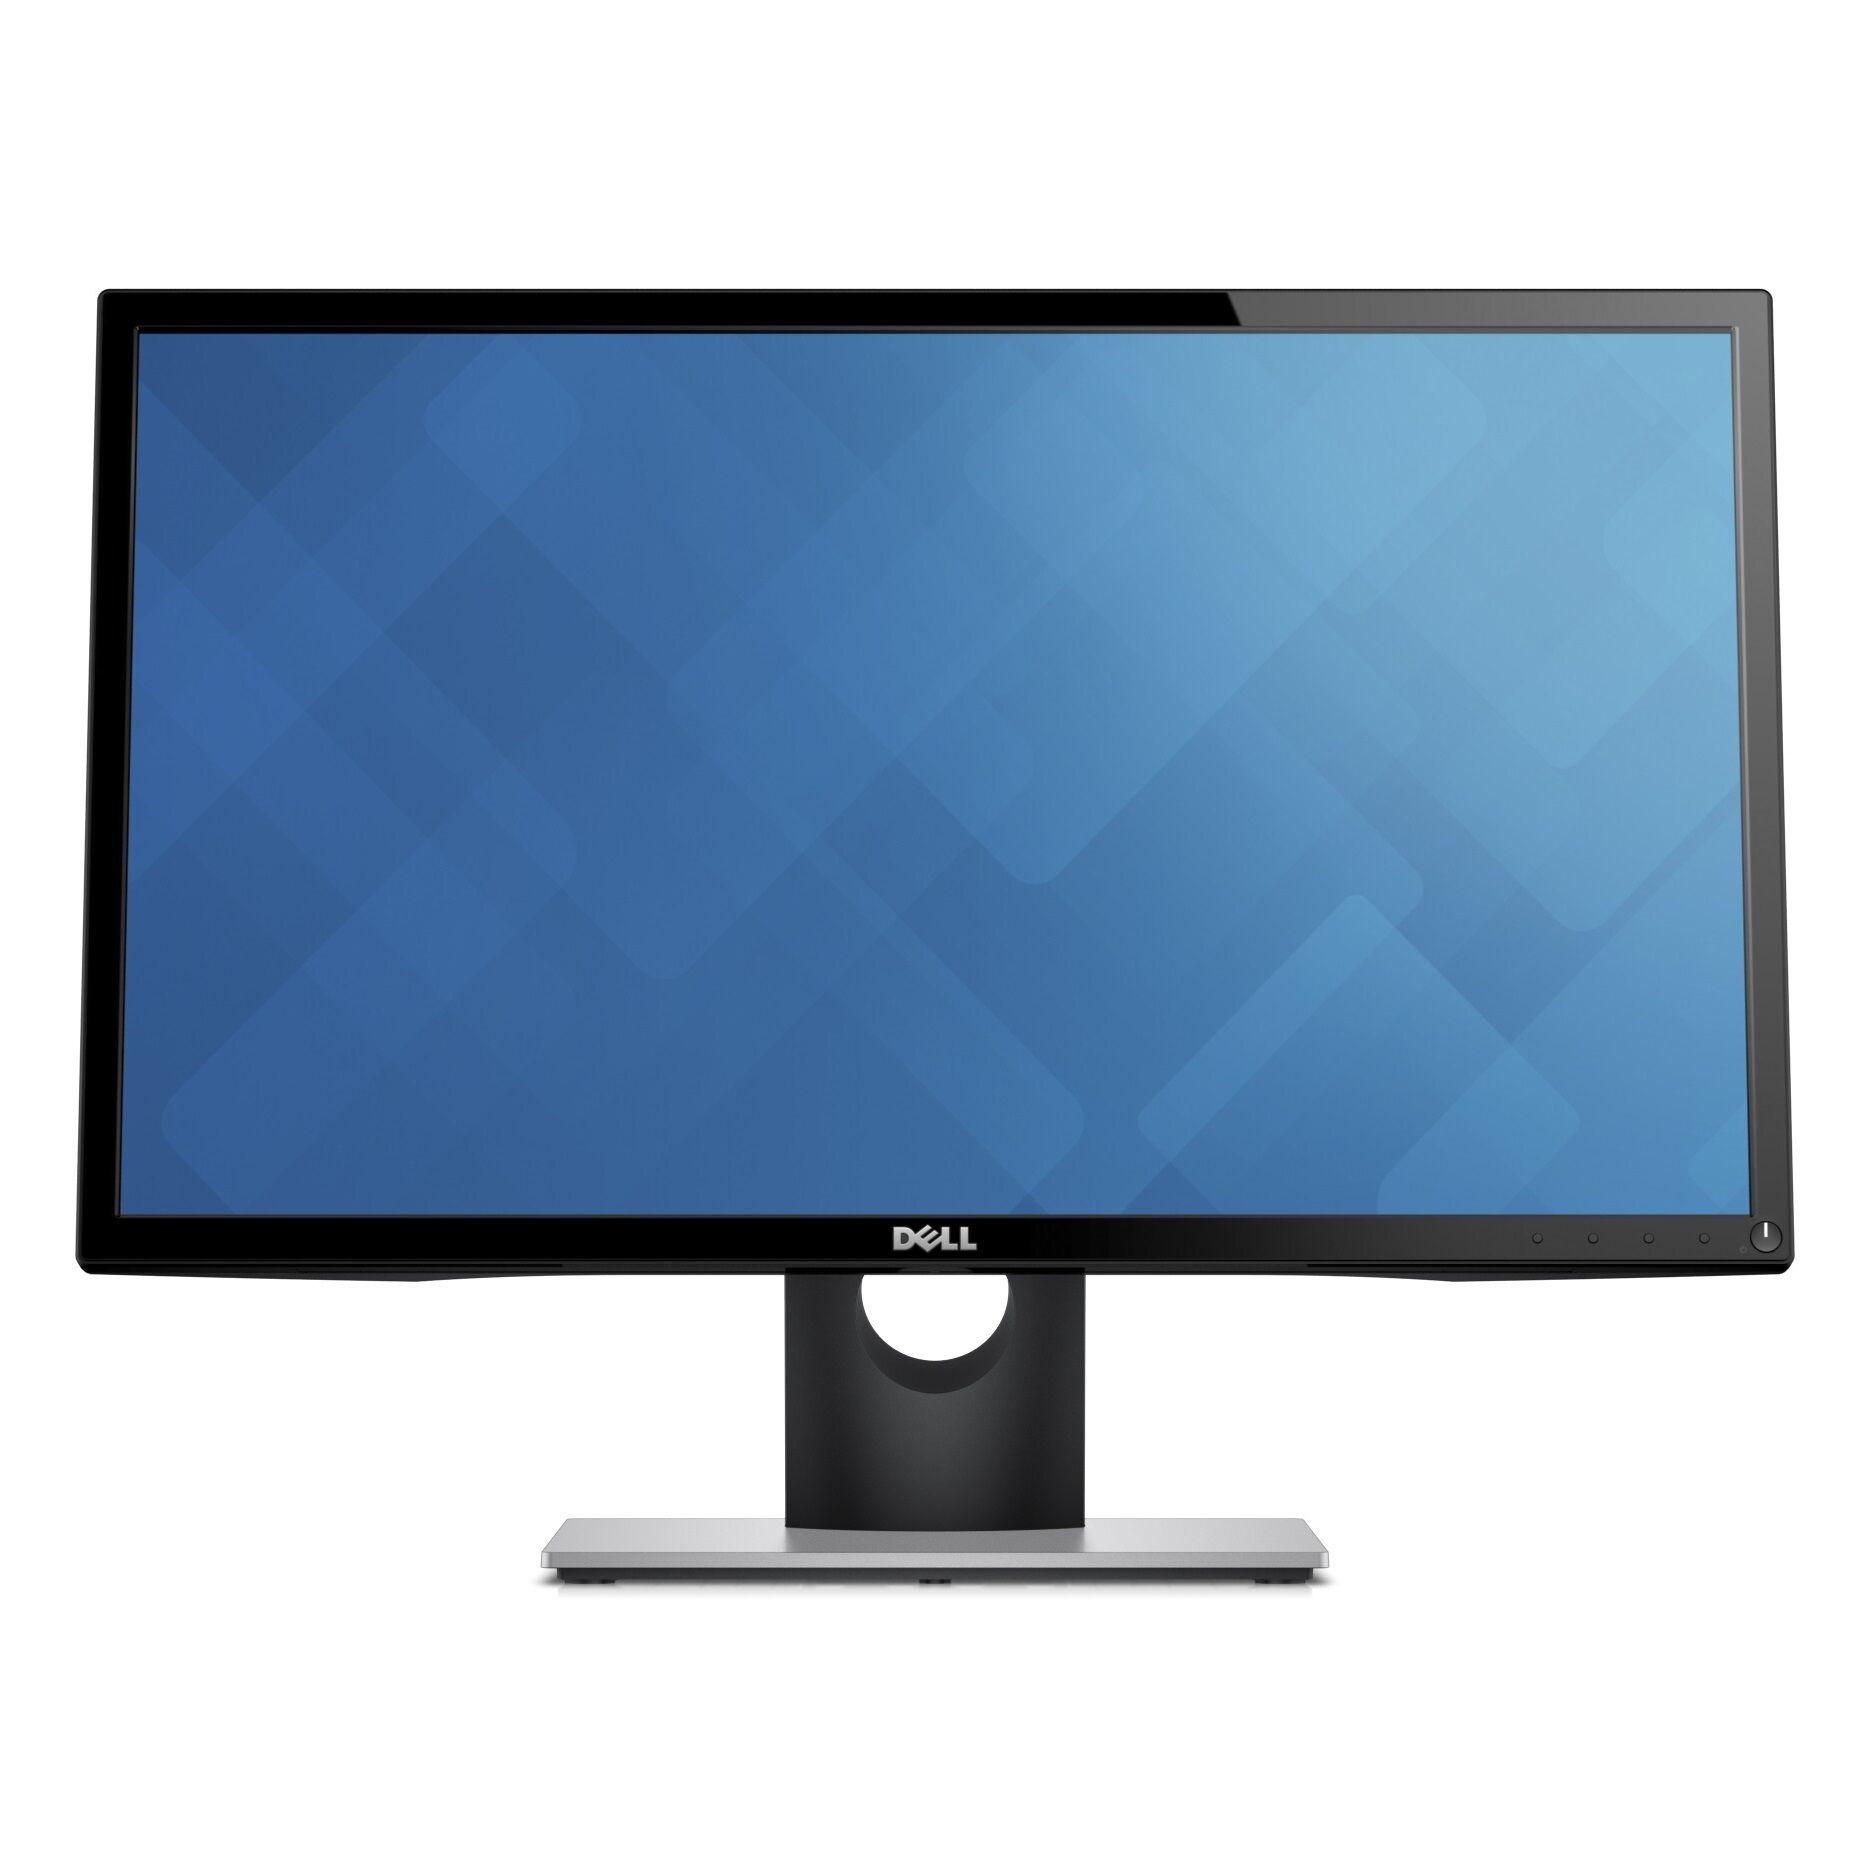 Dell SE2416H - 60,5 cm (23,8 Zoll), LED, IPS-Panel, HDMI